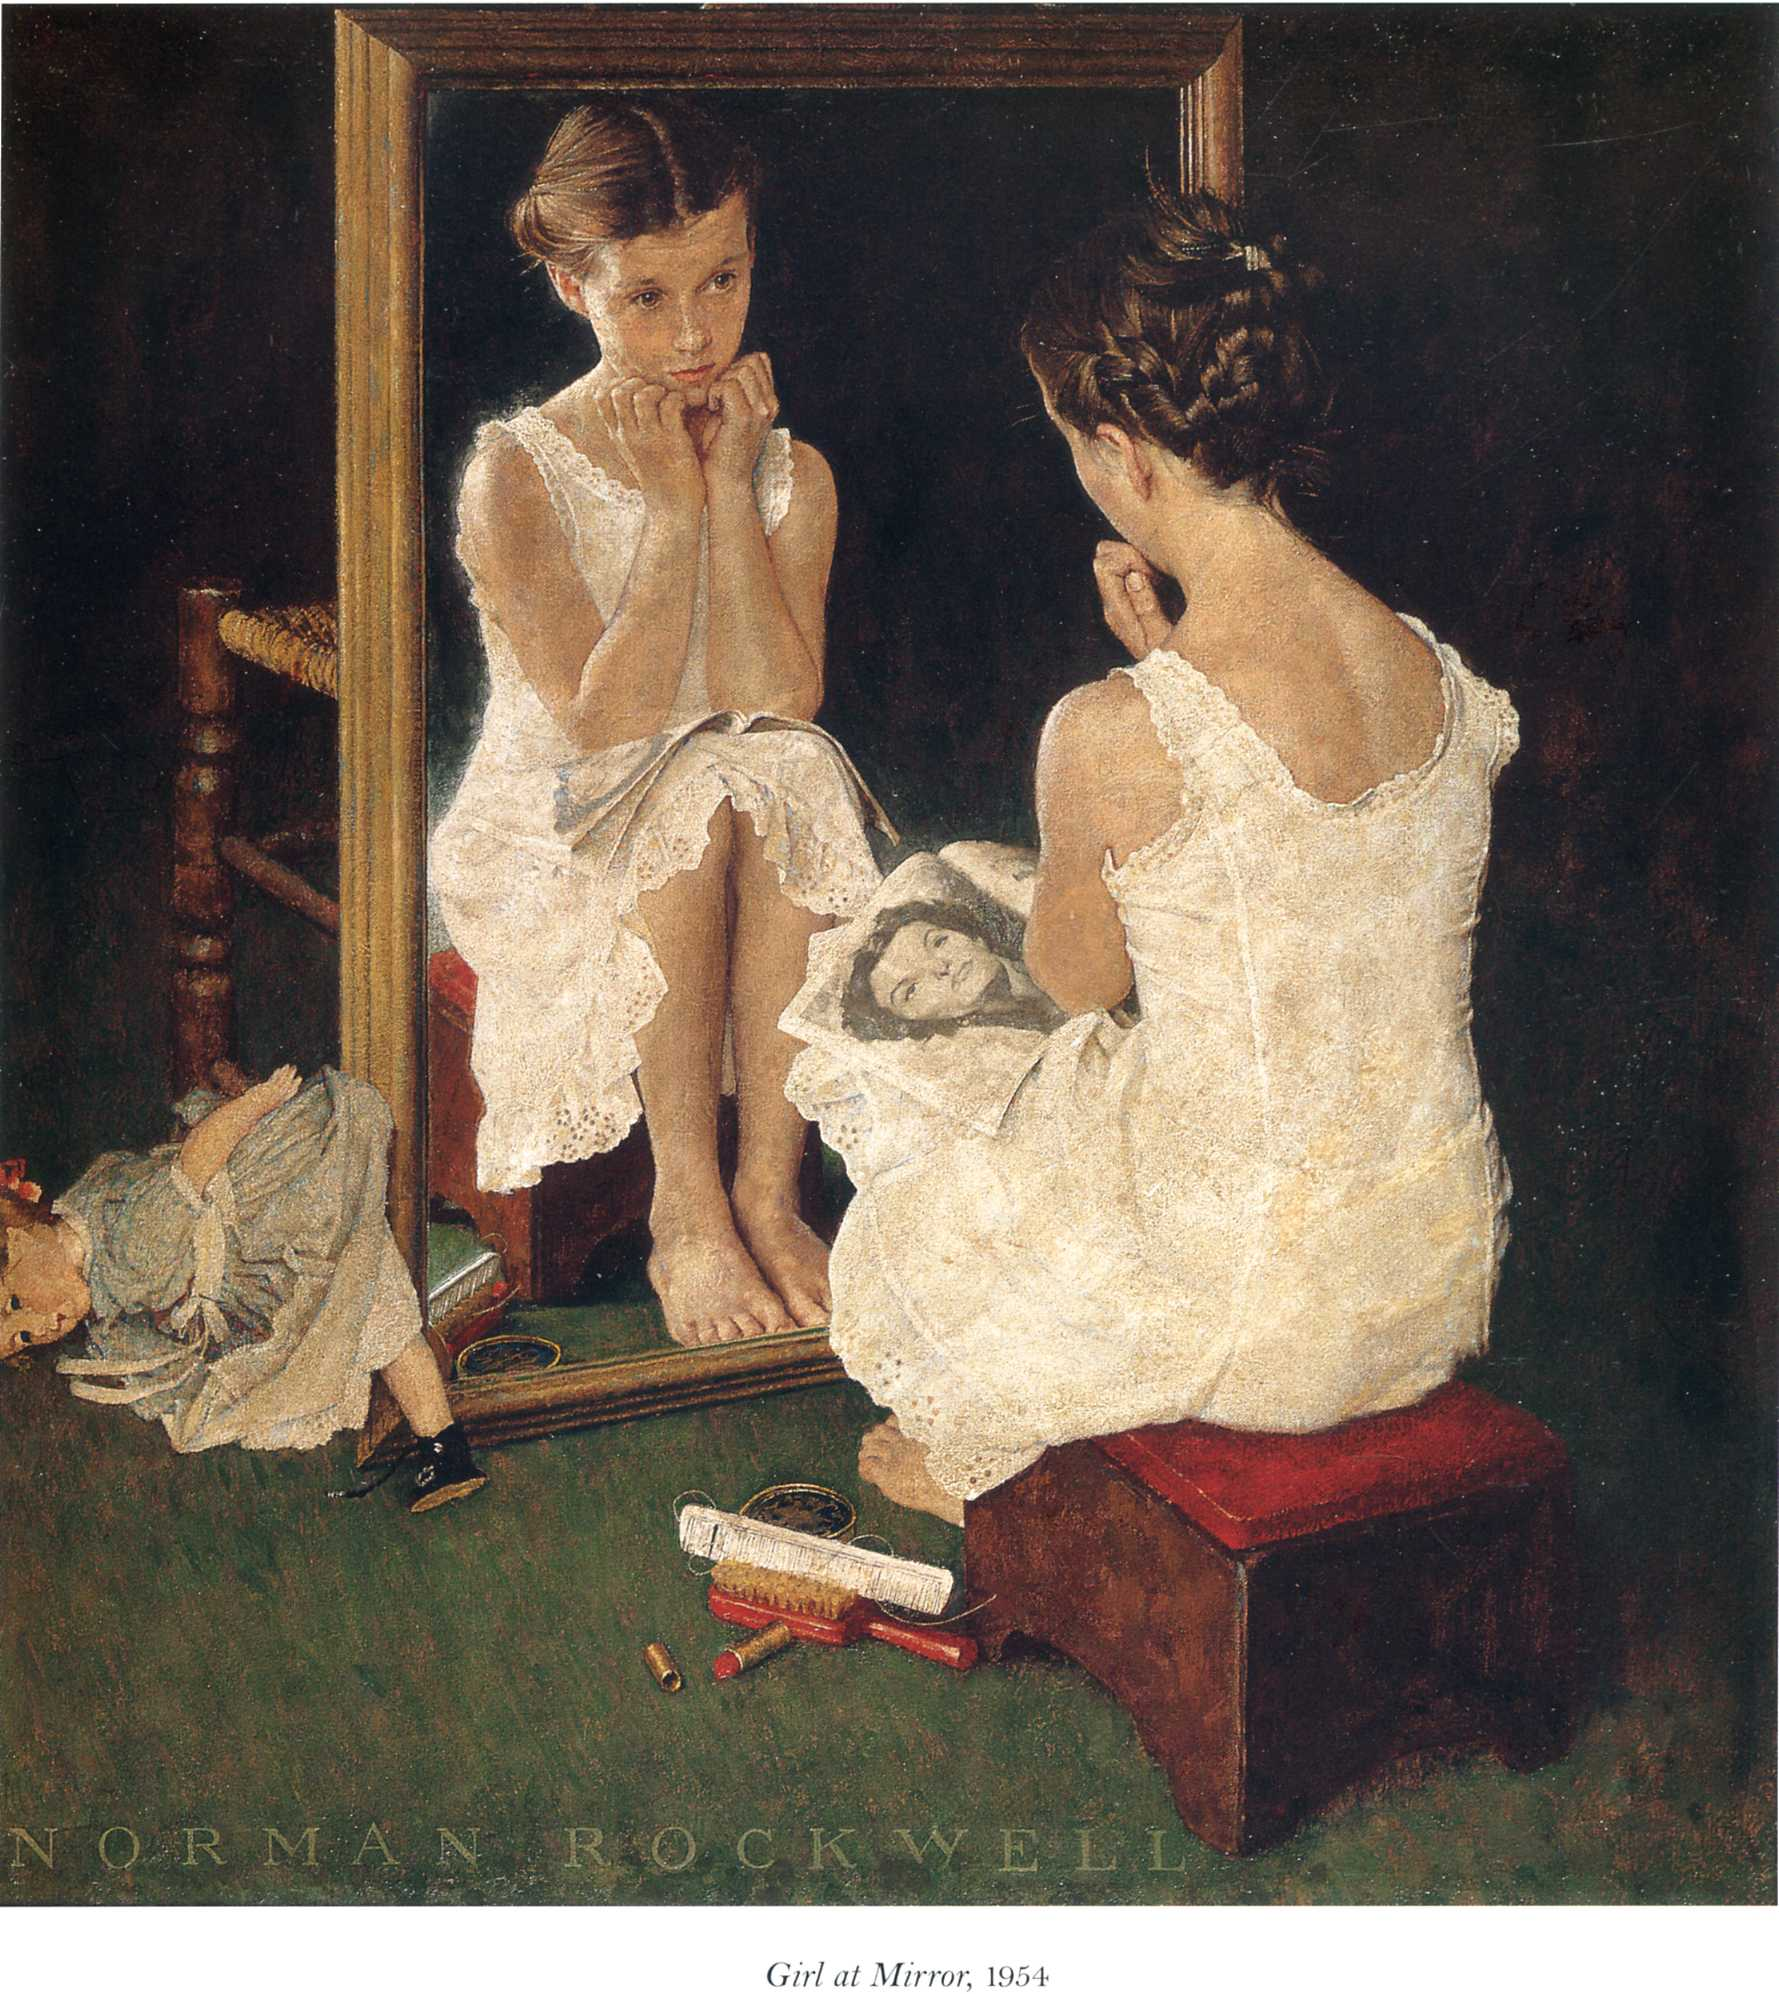 Rockwell Girl at Mirror